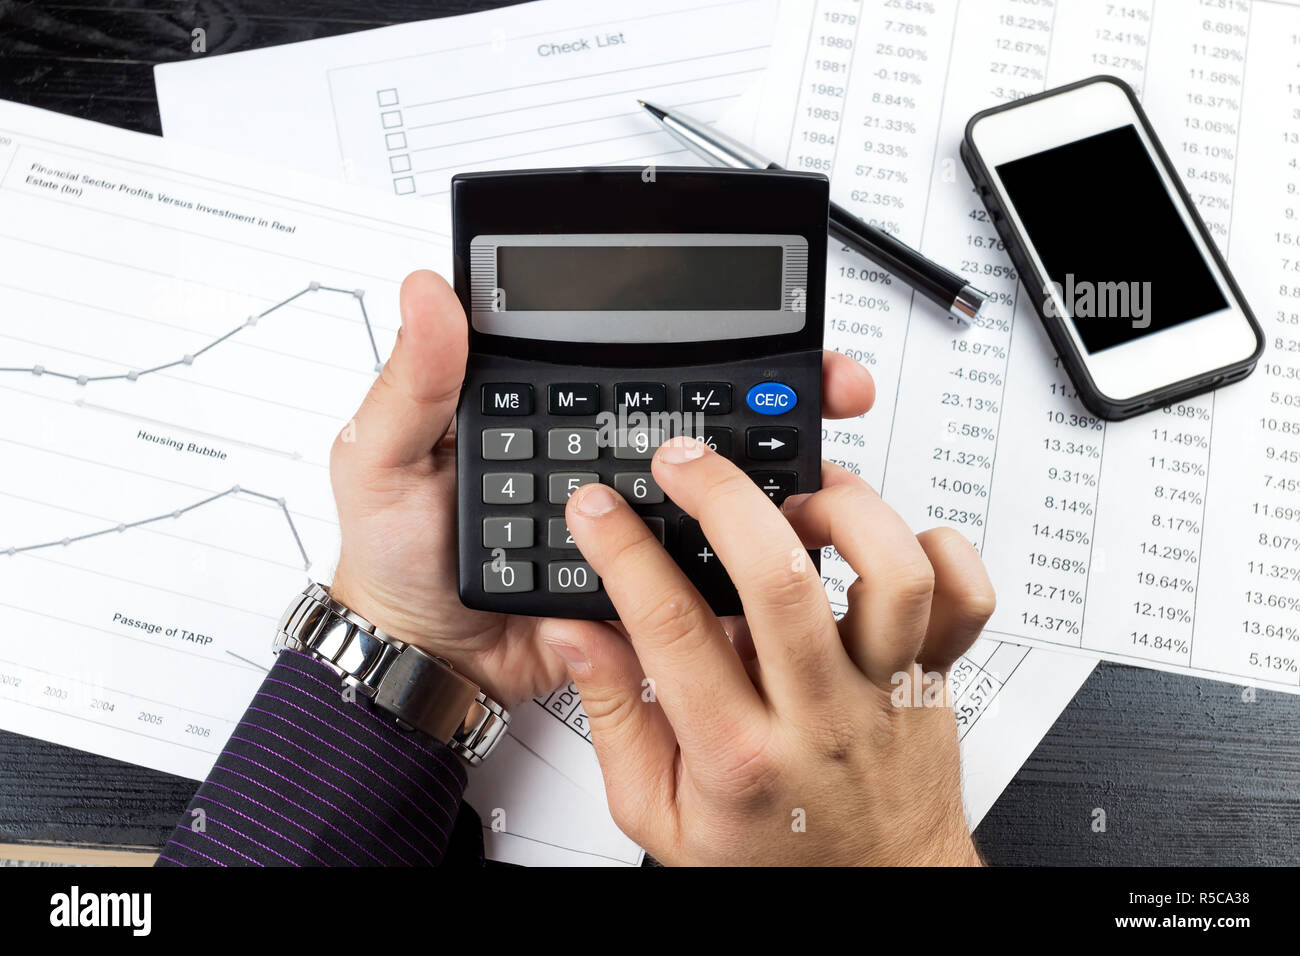 Calculator Watch Stock Photos Images Alamy Circuitry Of An Electronic Royalty Free Photography Young Businessman Using Smartphone Elegant Pen In The Office Formal Outfit With